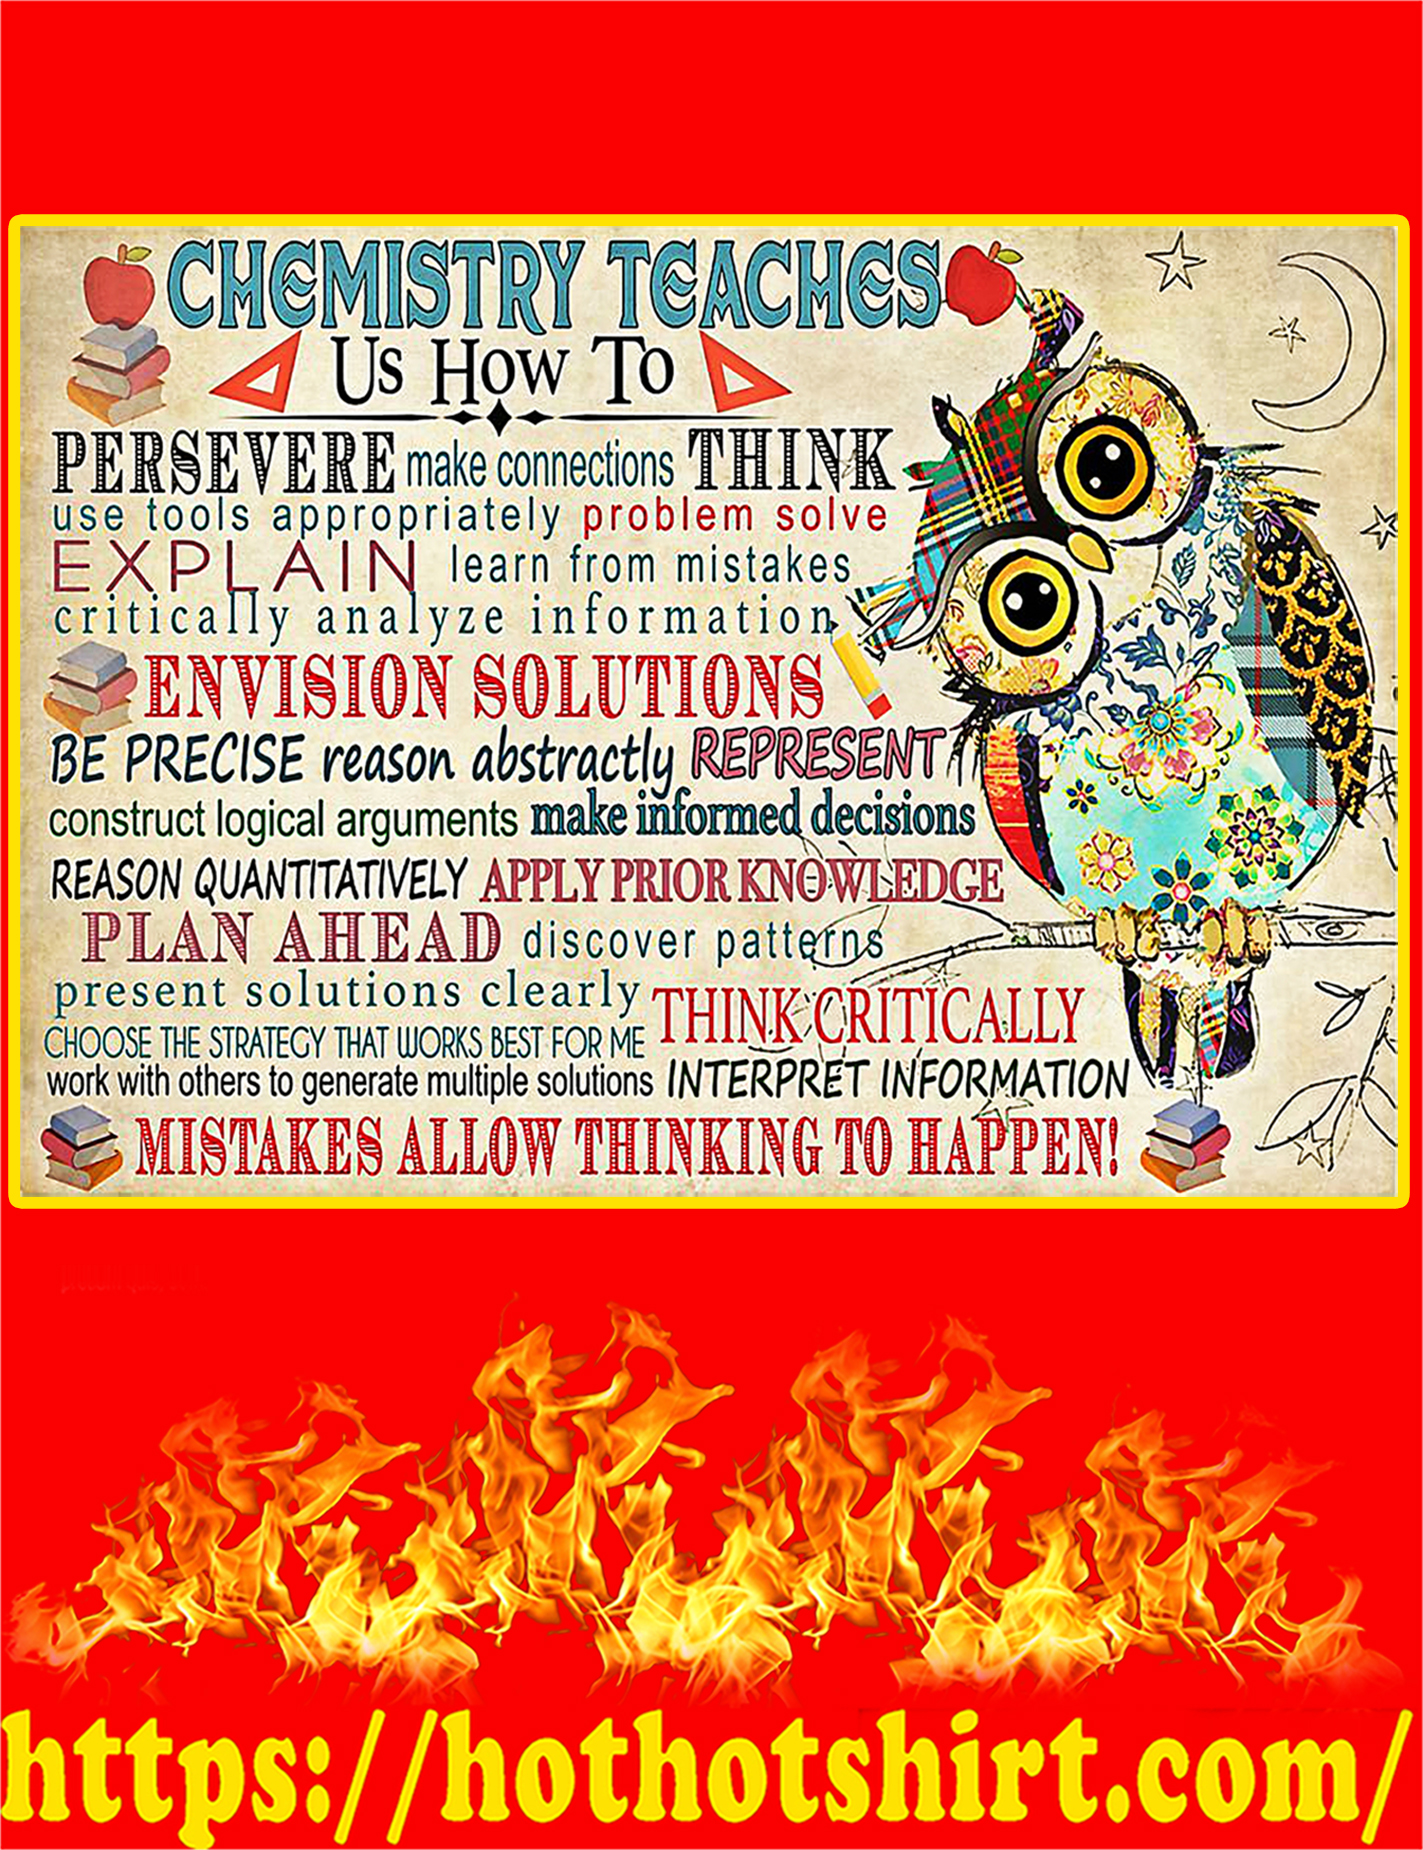 Chemistry Teaches Poster - A3